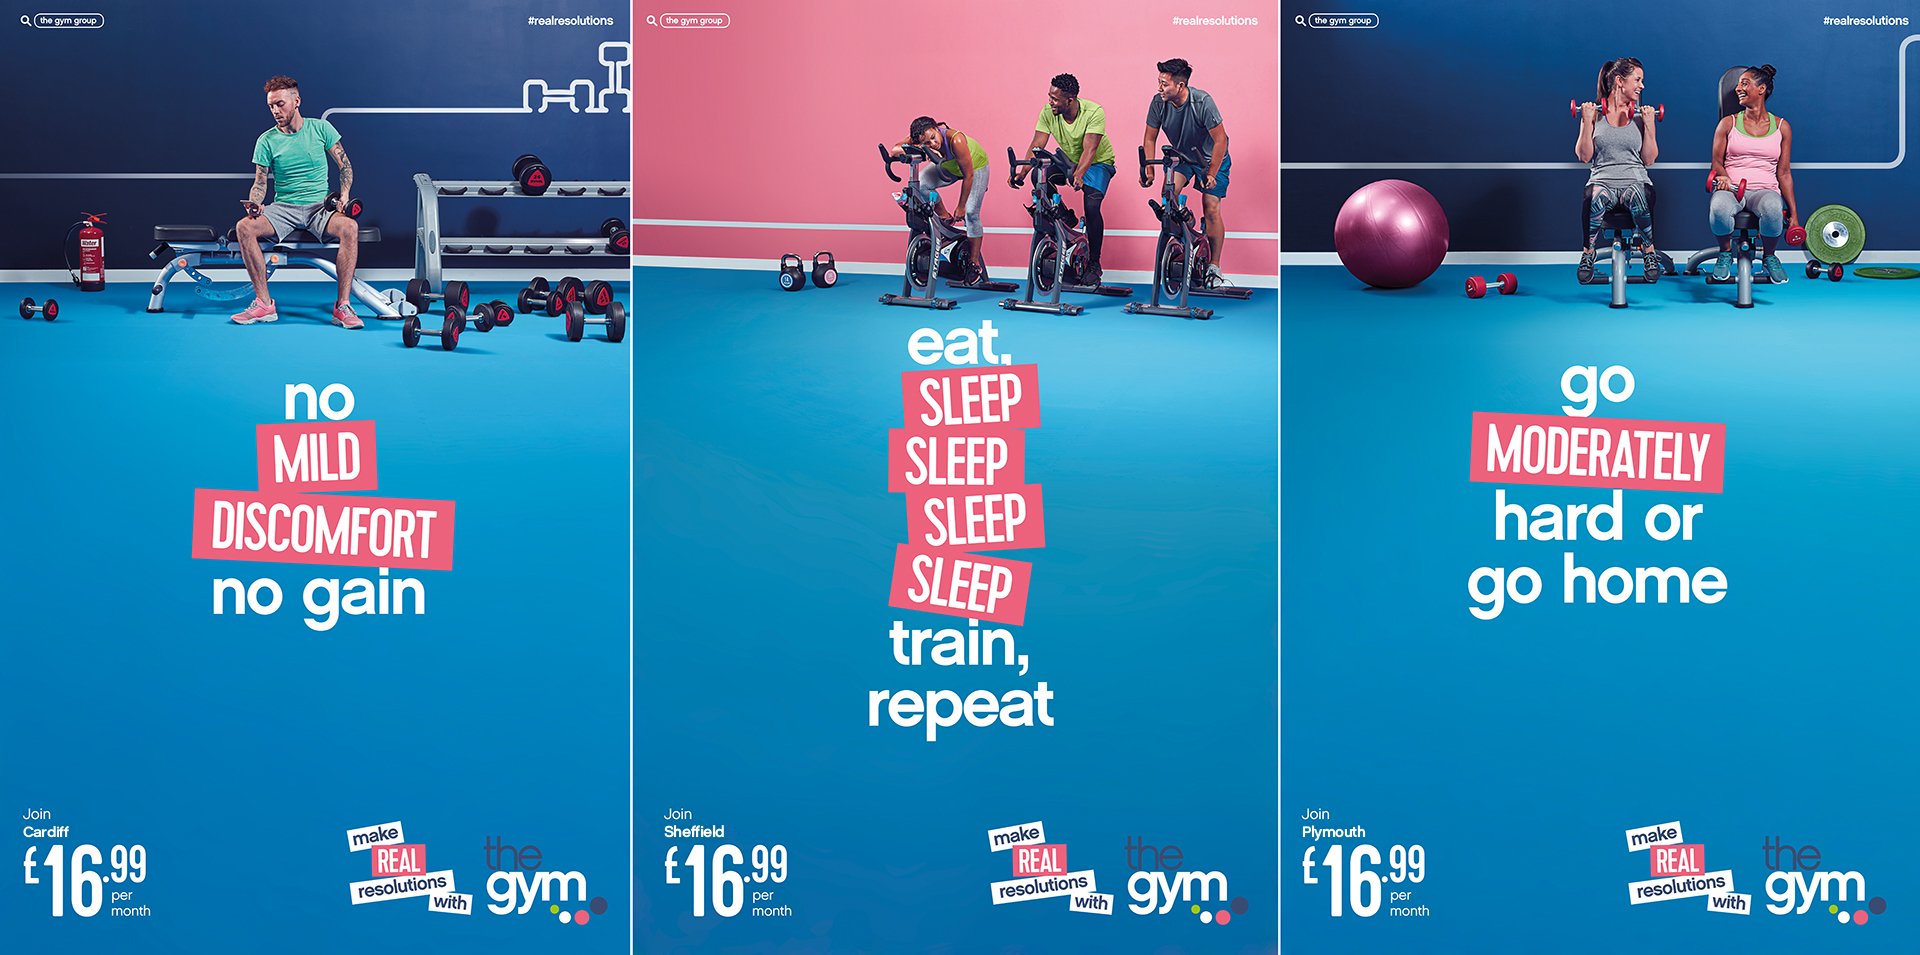 The Gym Group January Marketing Campaign Images